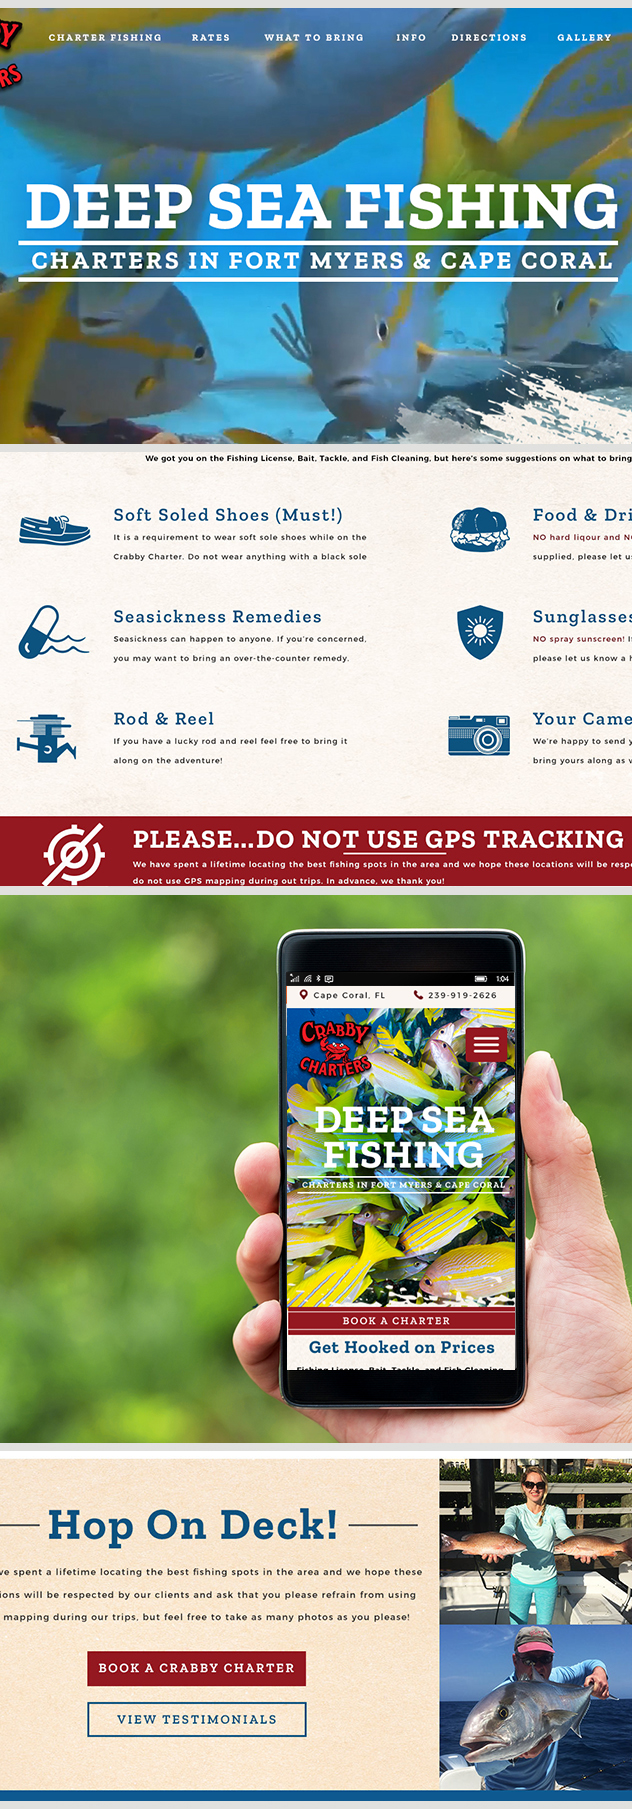 Milwaukee web marketing for Crabby Charters